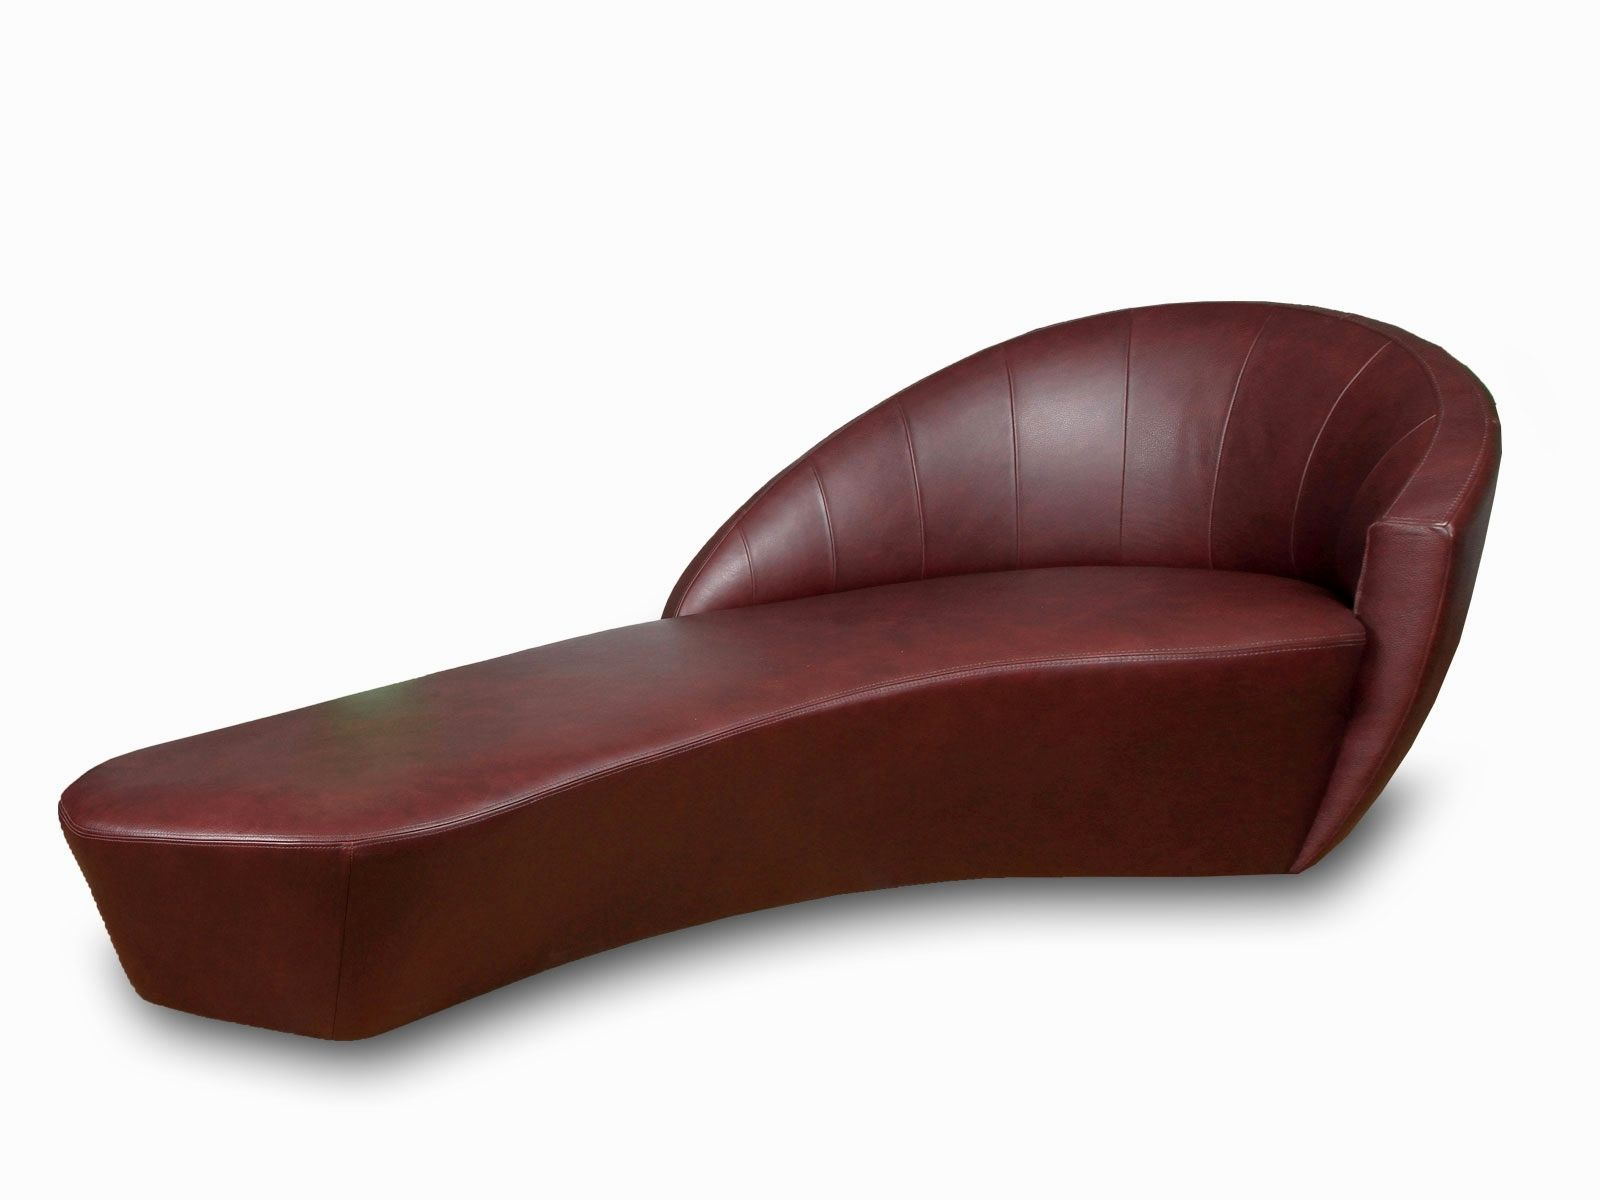 cute small sofa with chaise image-Contemporary Small sofa with Chaise Picture